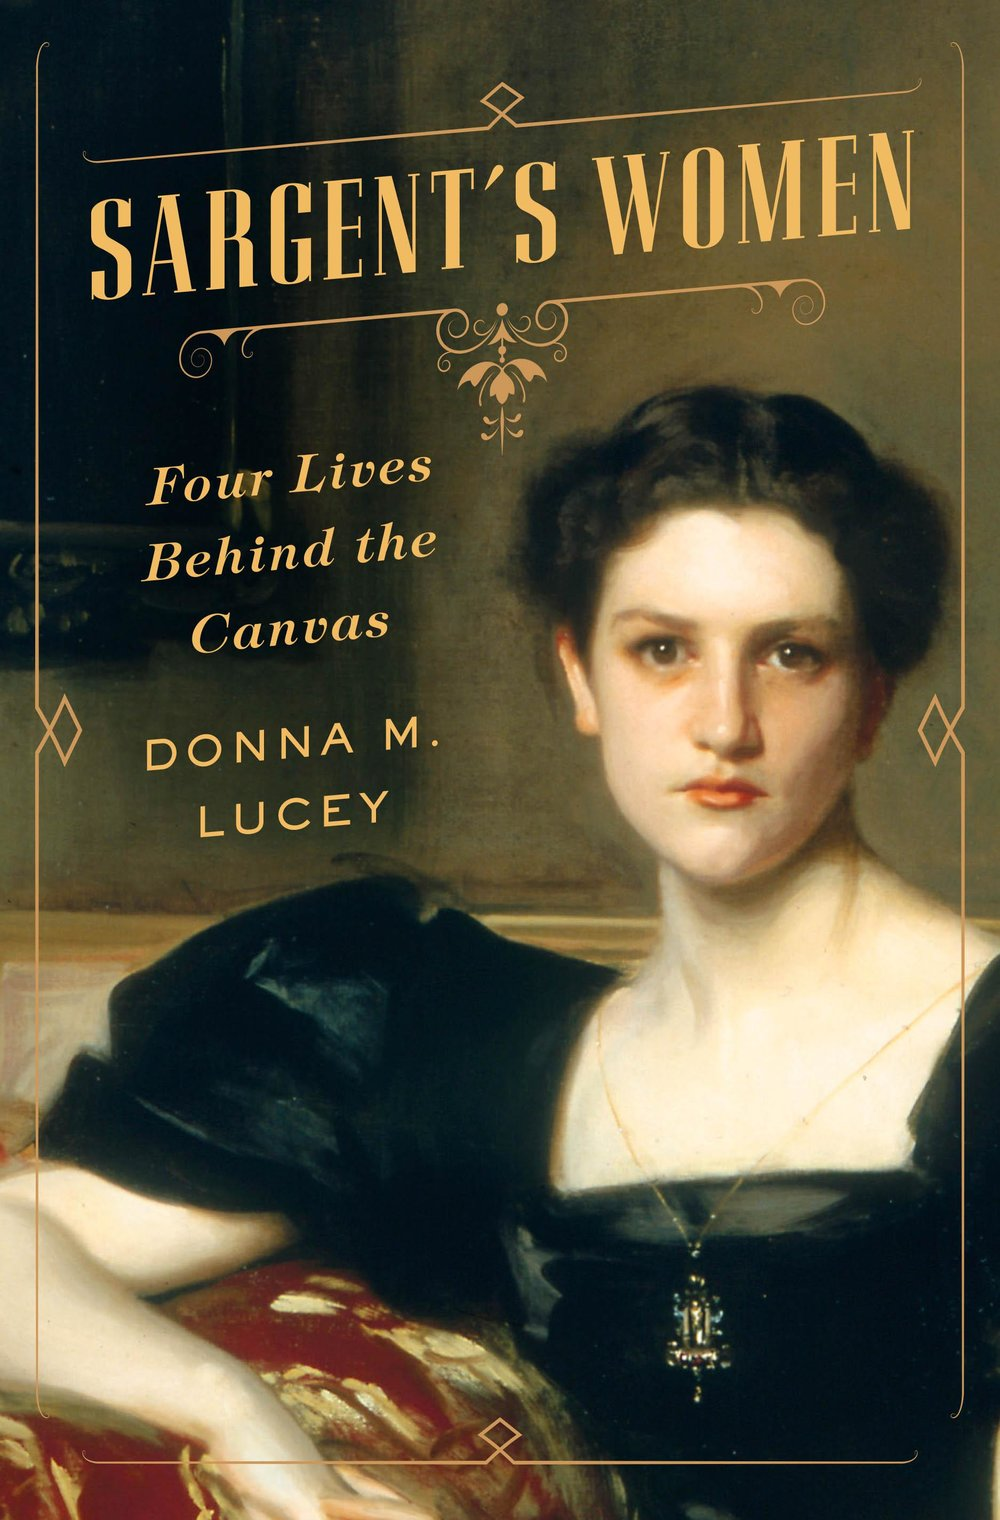 sargent's women by donna m lucey.jpg